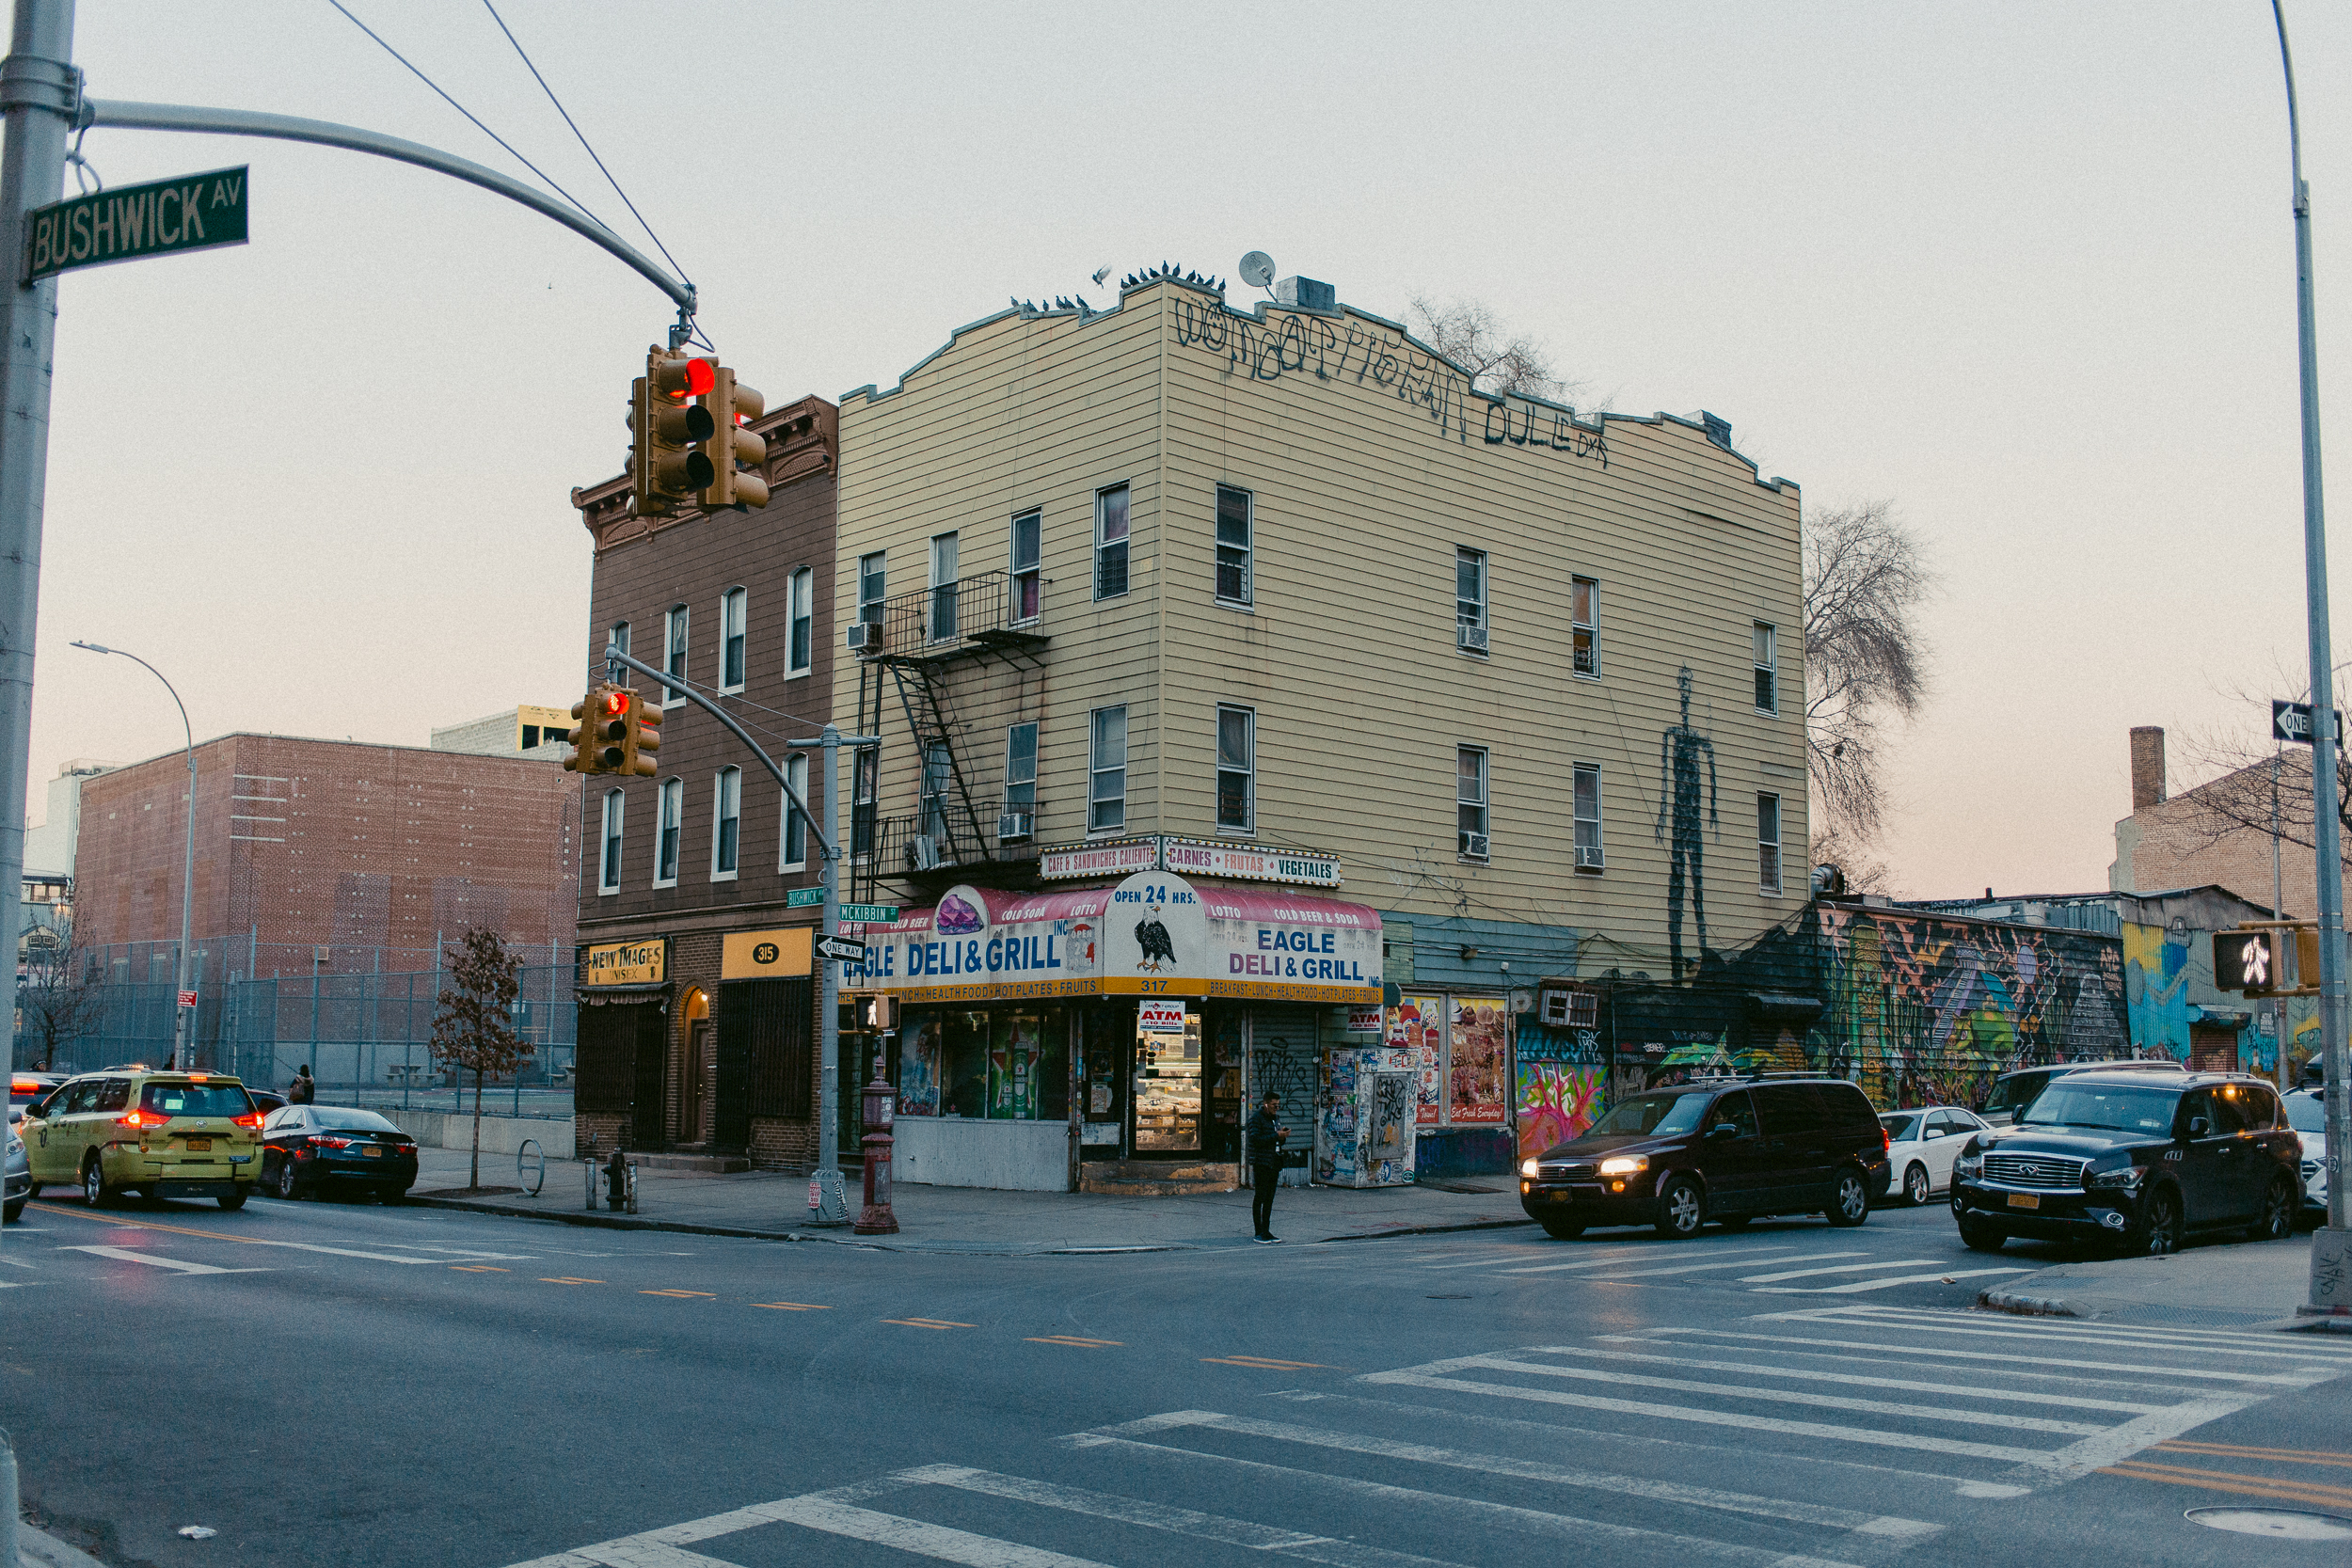 PLACES_NYC_071218_256.jpg